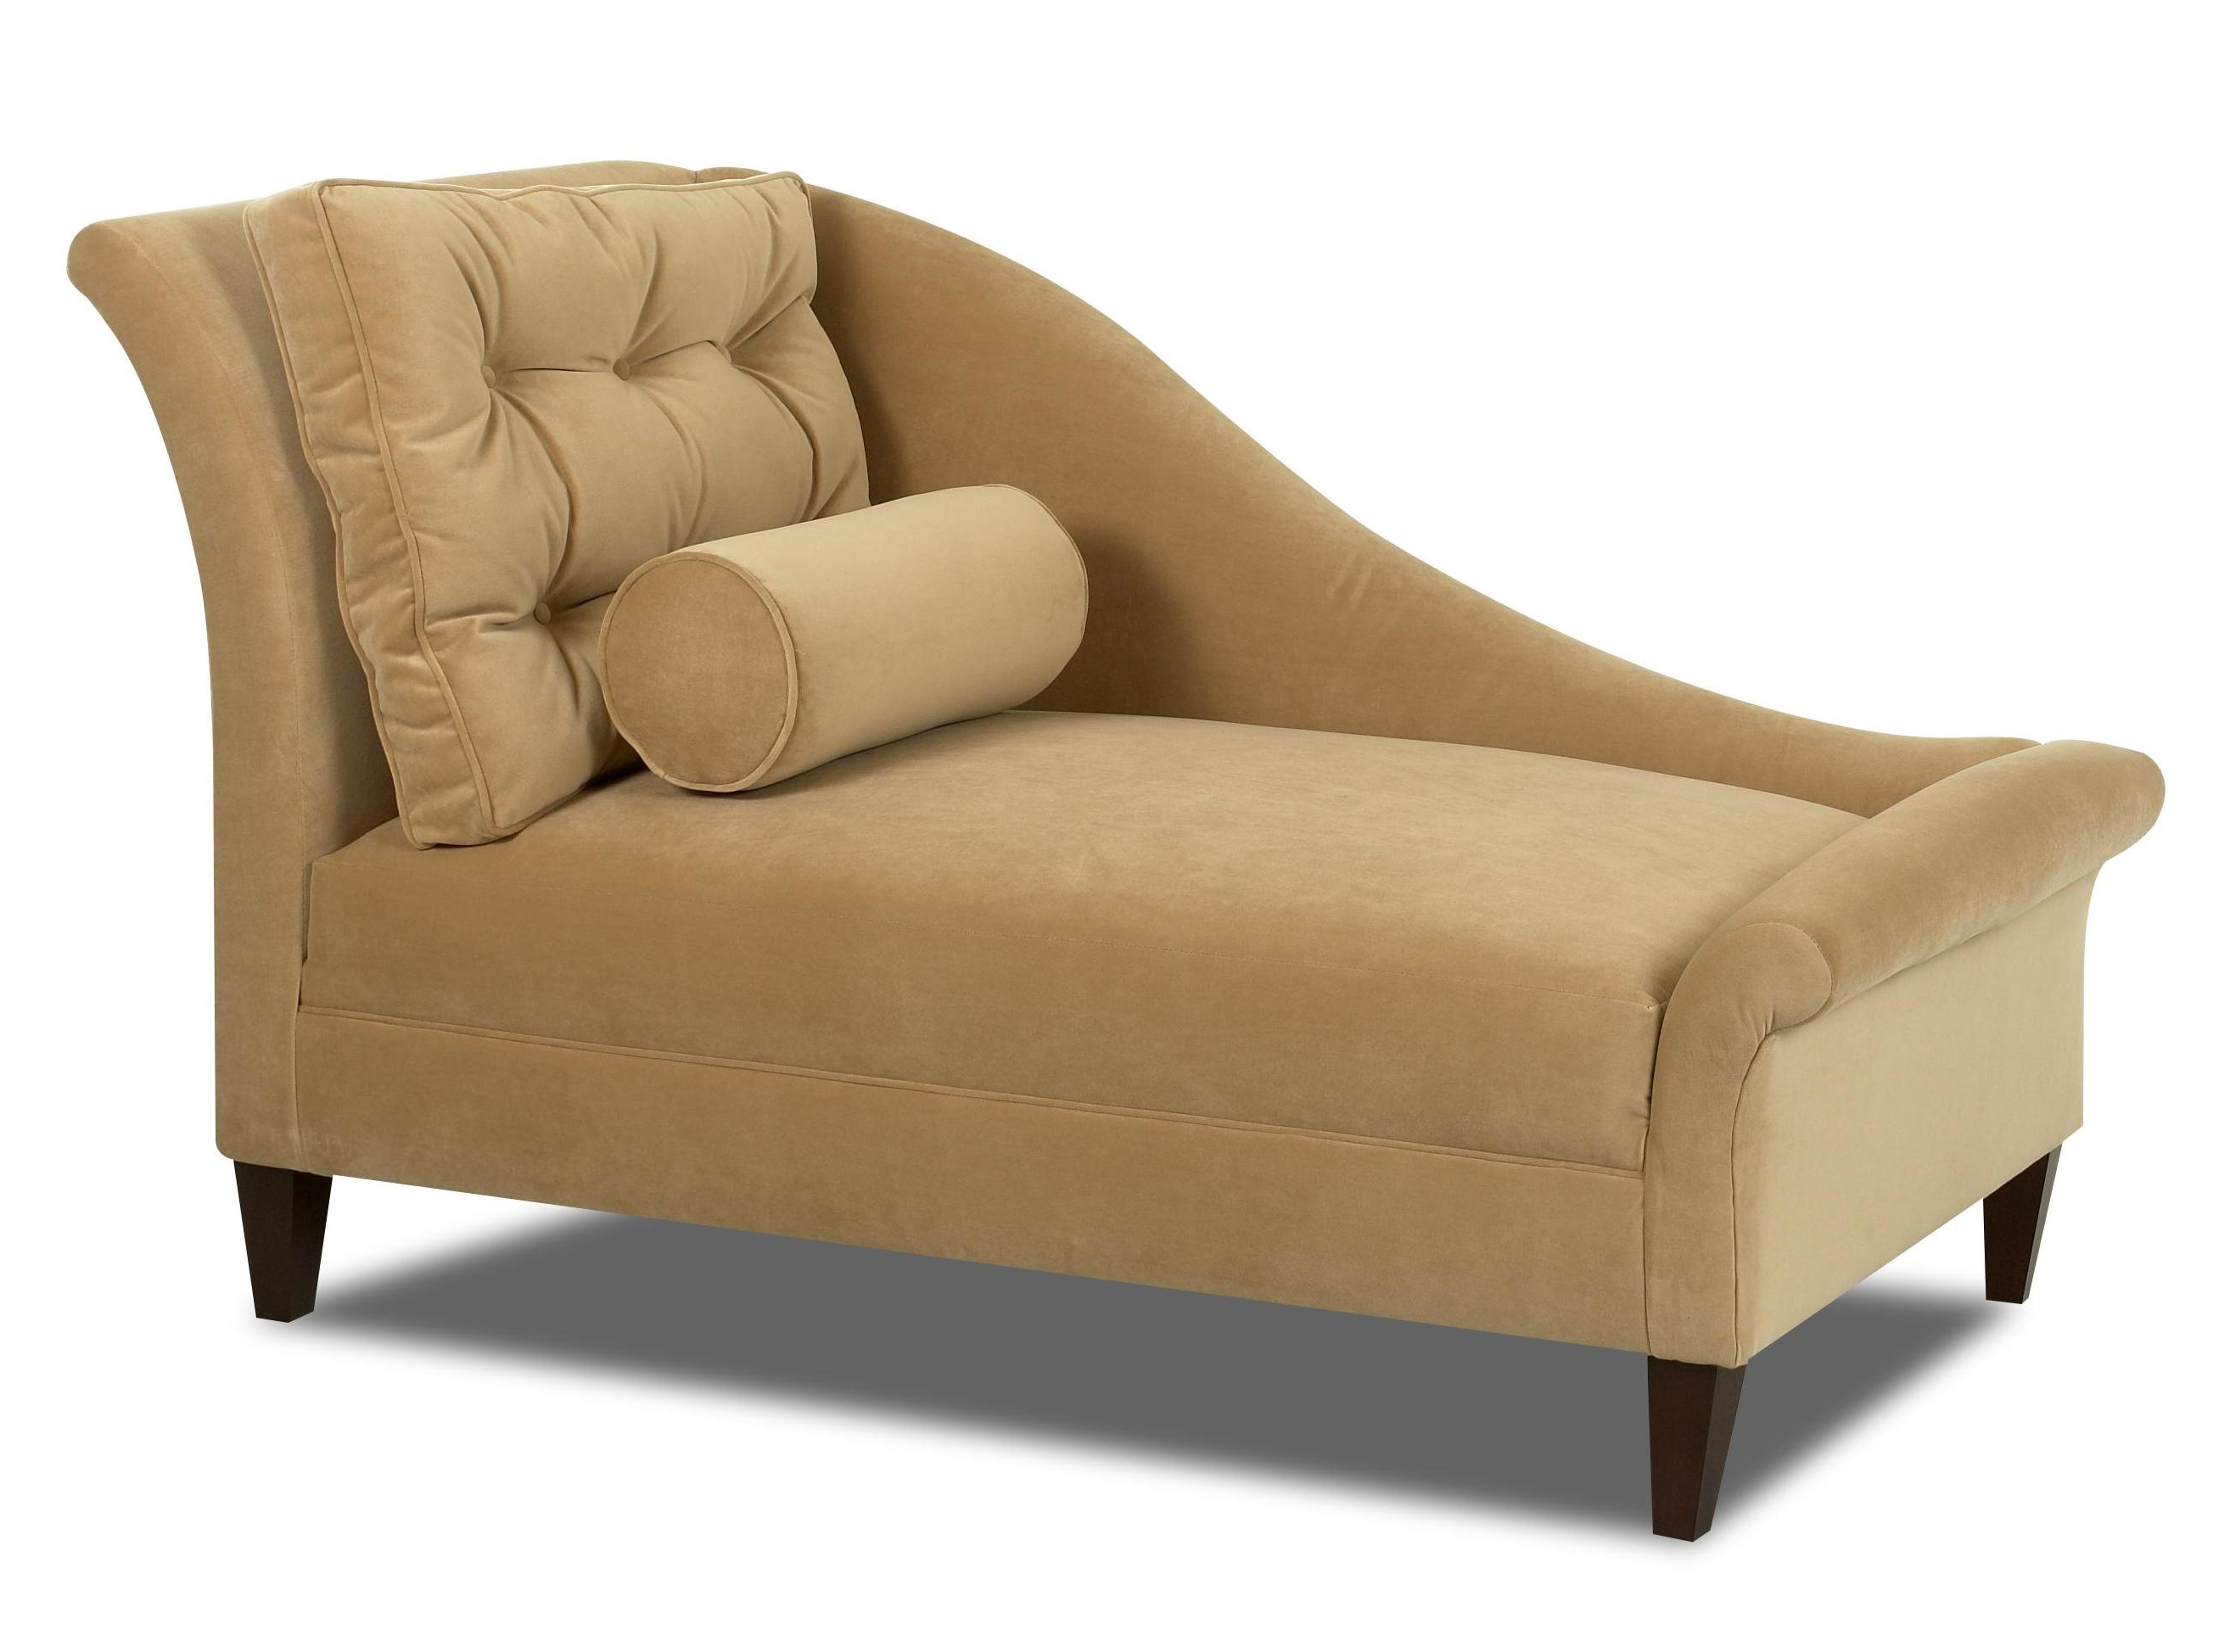 Best Chaise Lounge Chairs Small Chaise Lounge For Bedroom Bedroom Ideas